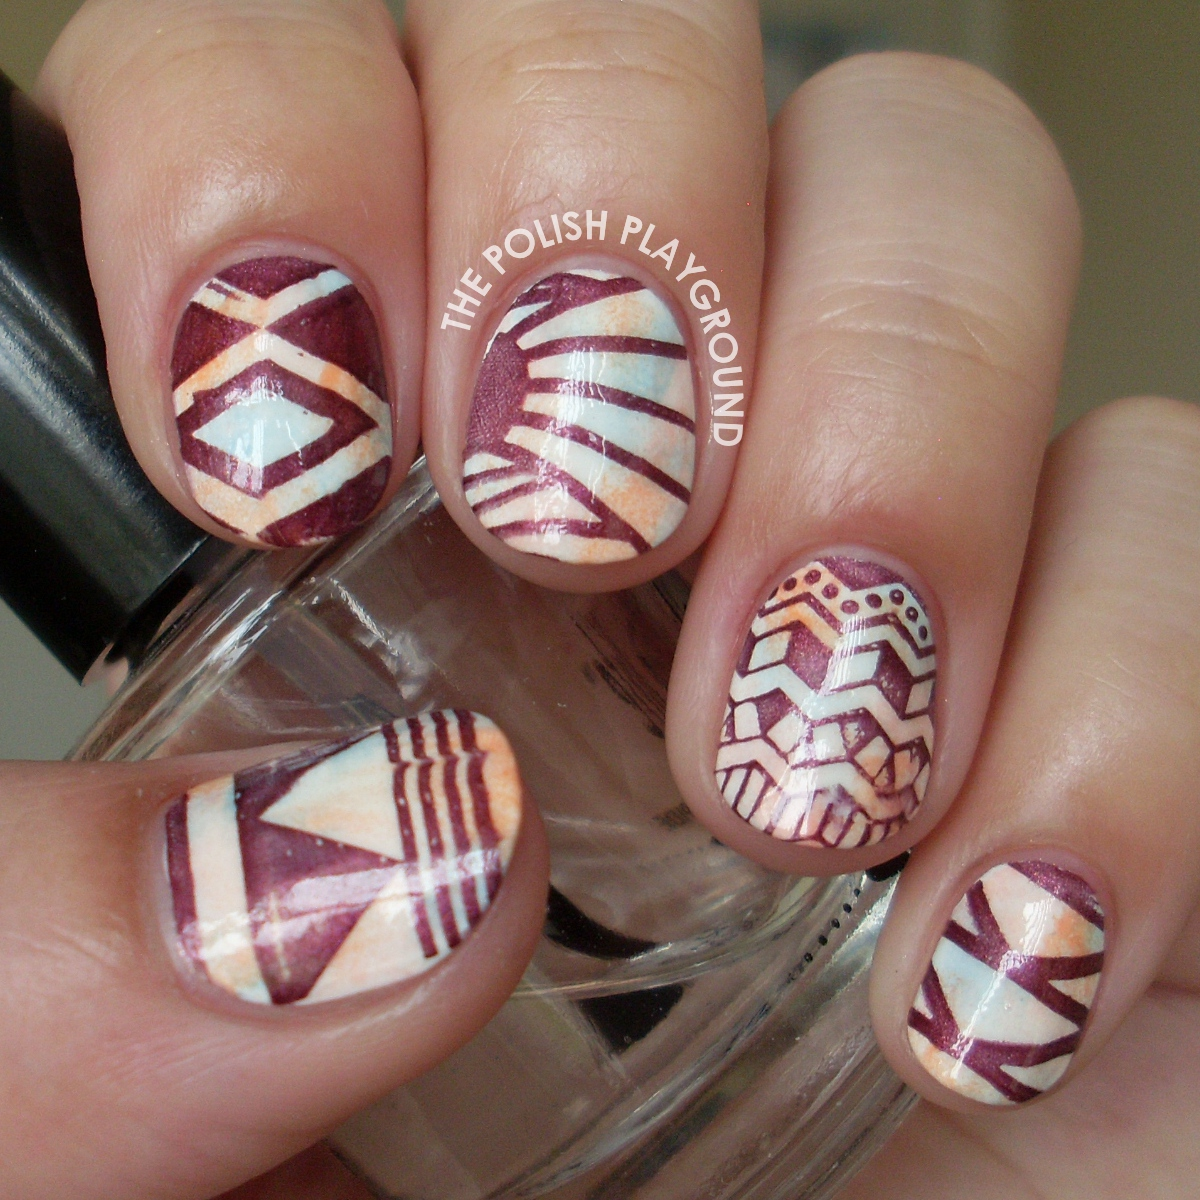 Soft Sponged Colors with Tribal Print Stamping Nail Art